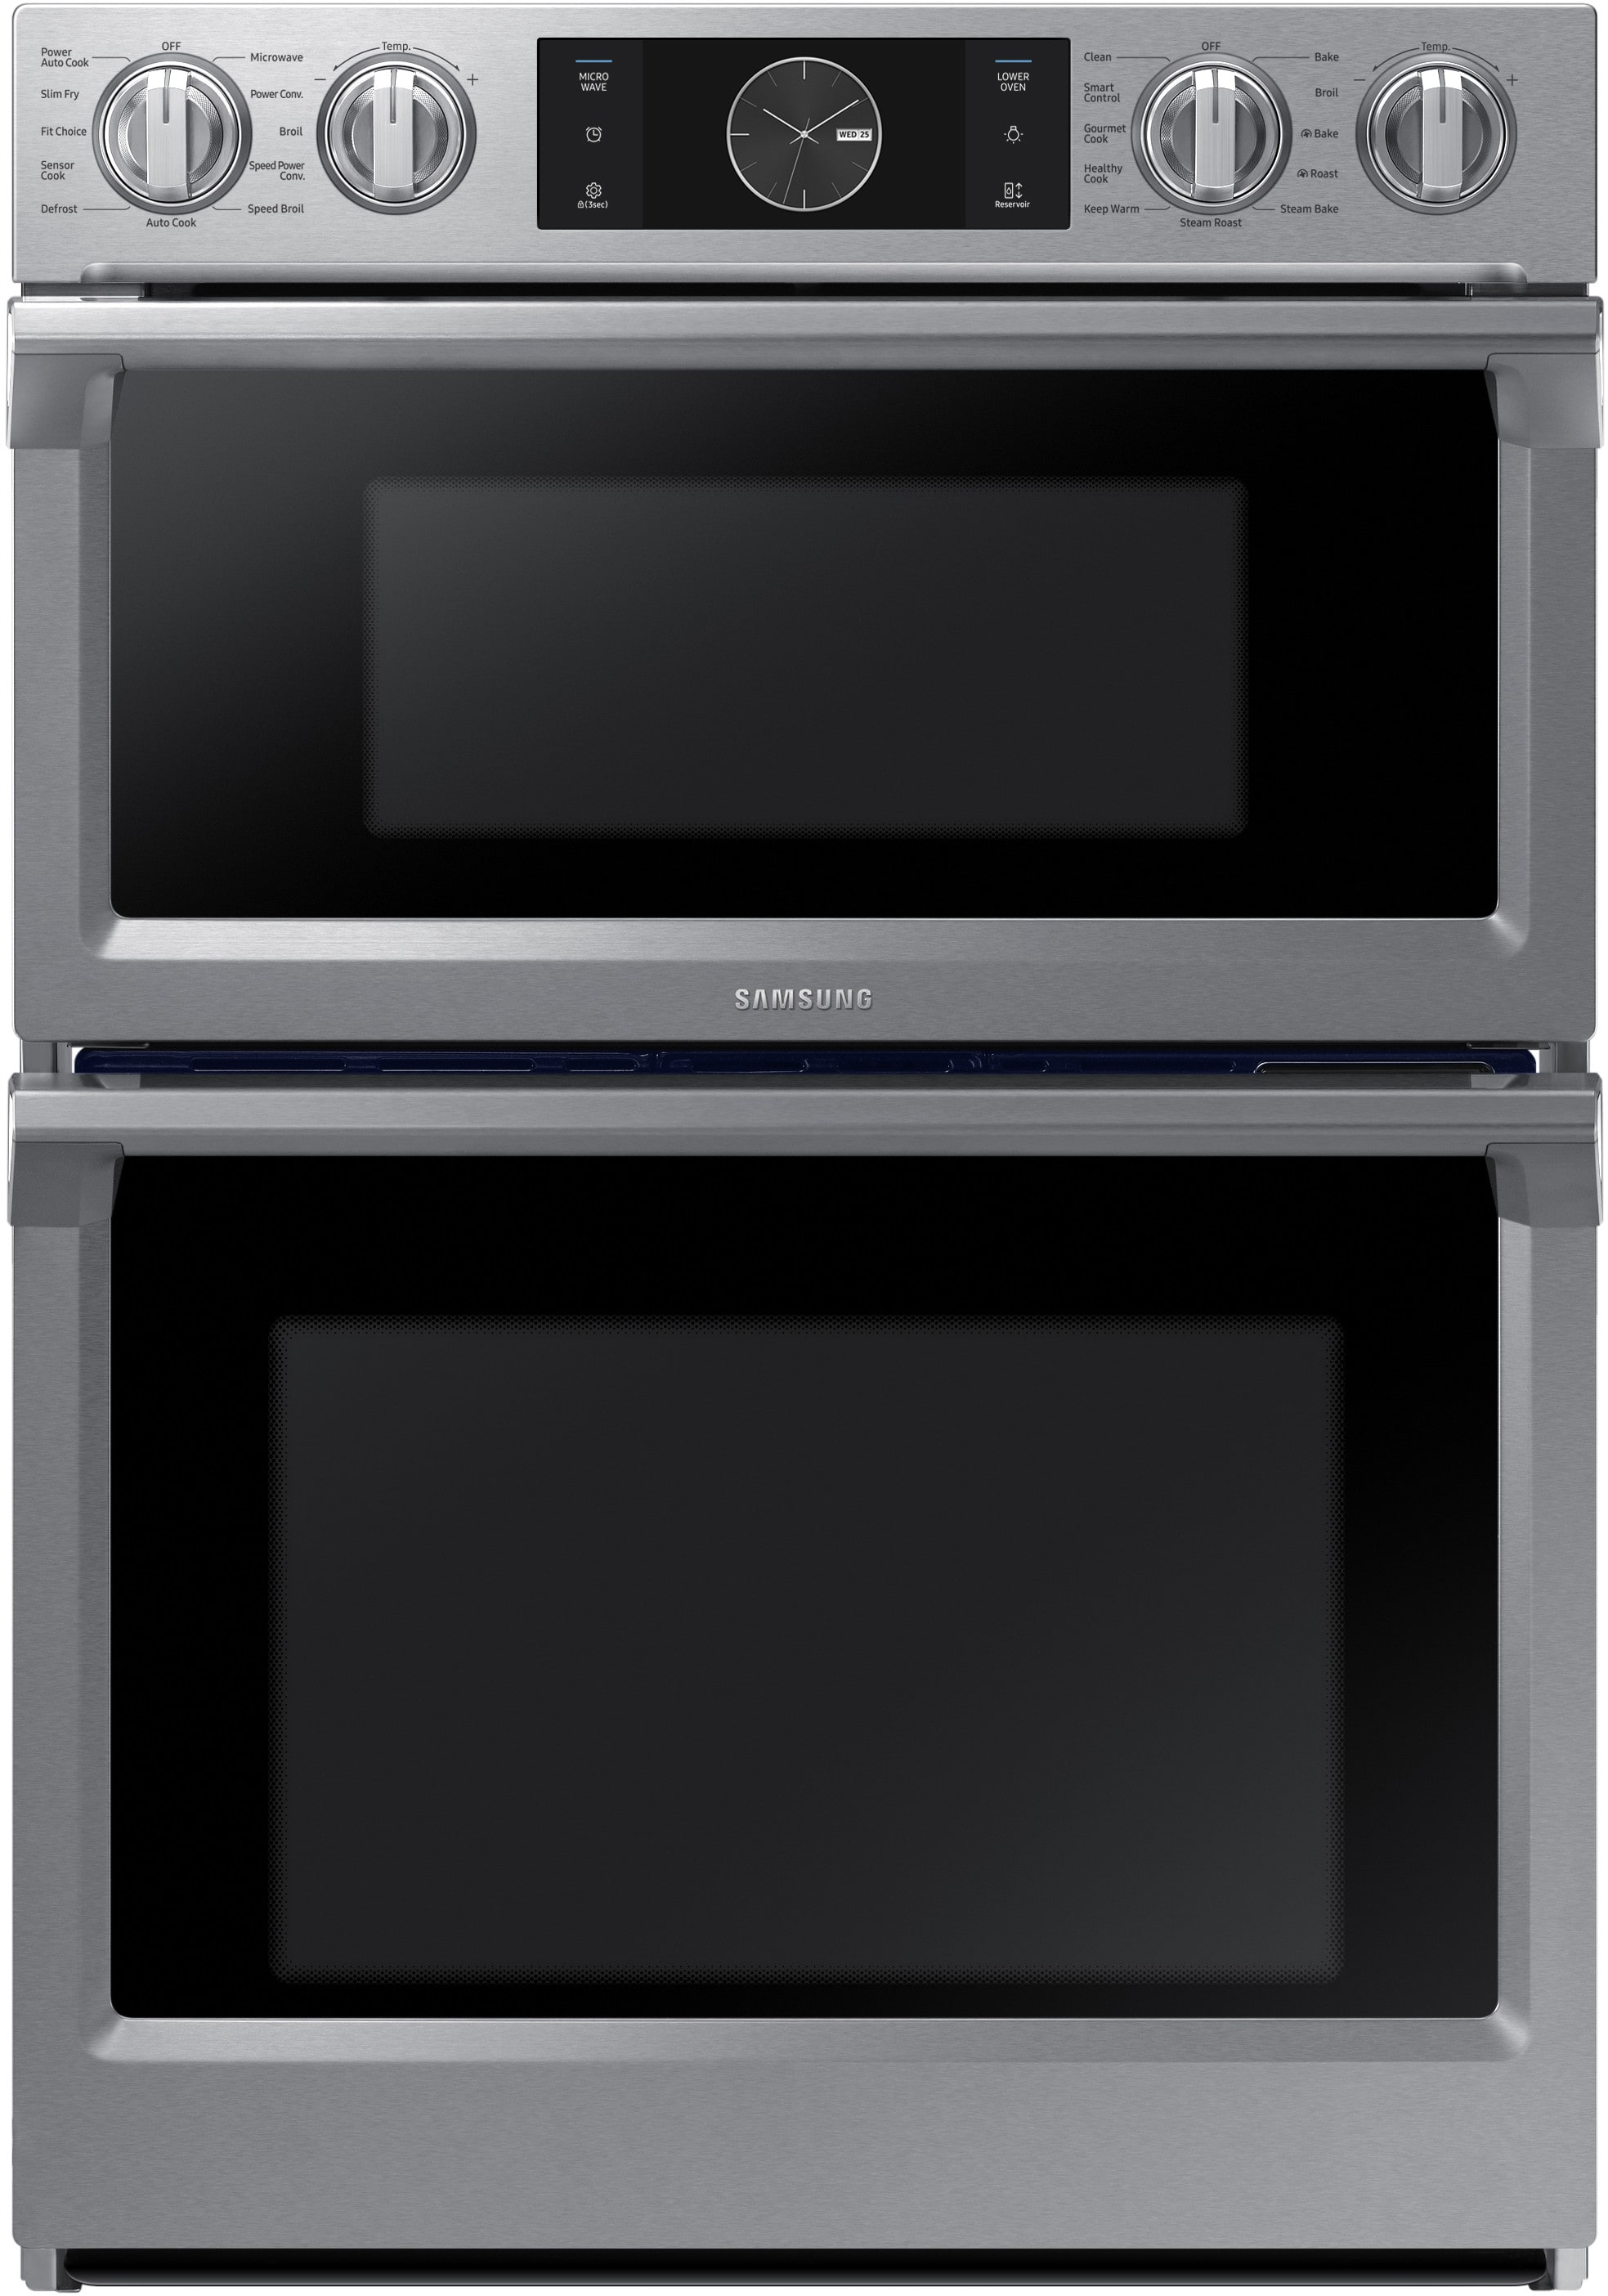 Samsung Nq70m7770ds 30 Inch Combination Electric Wall Oven